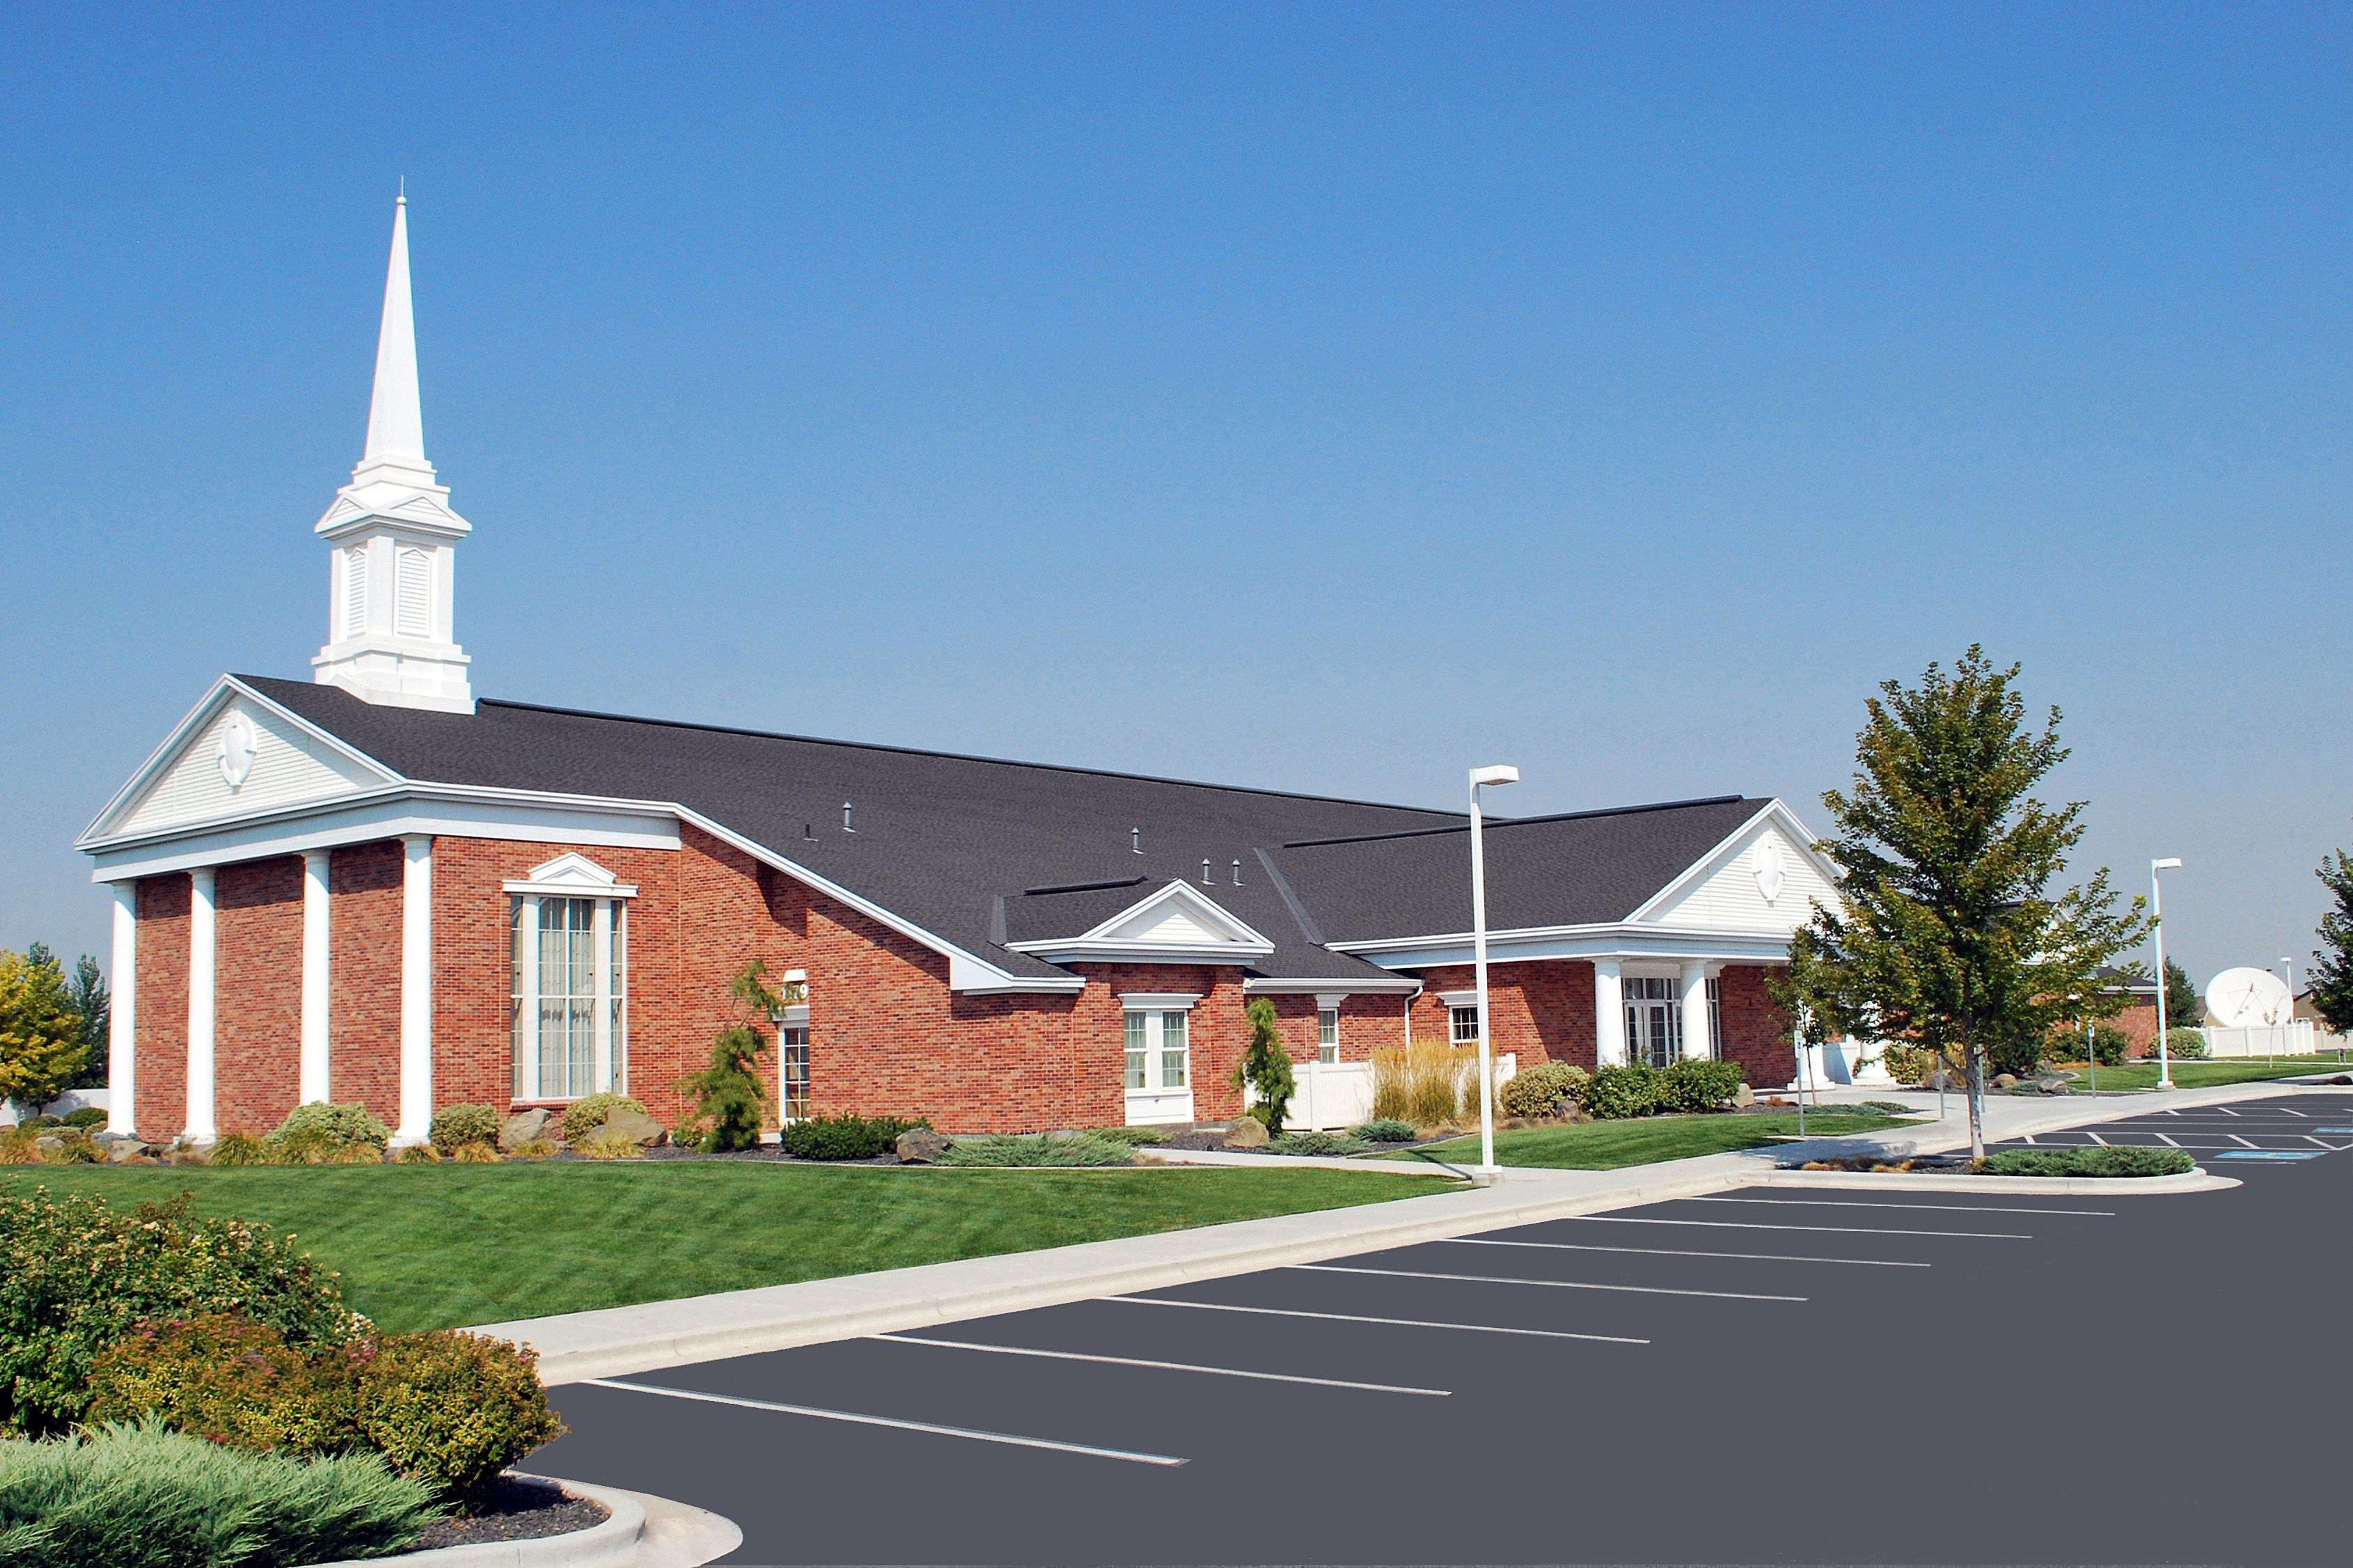 A side view of a chapel and parking lot in Caldwell, Idaho.